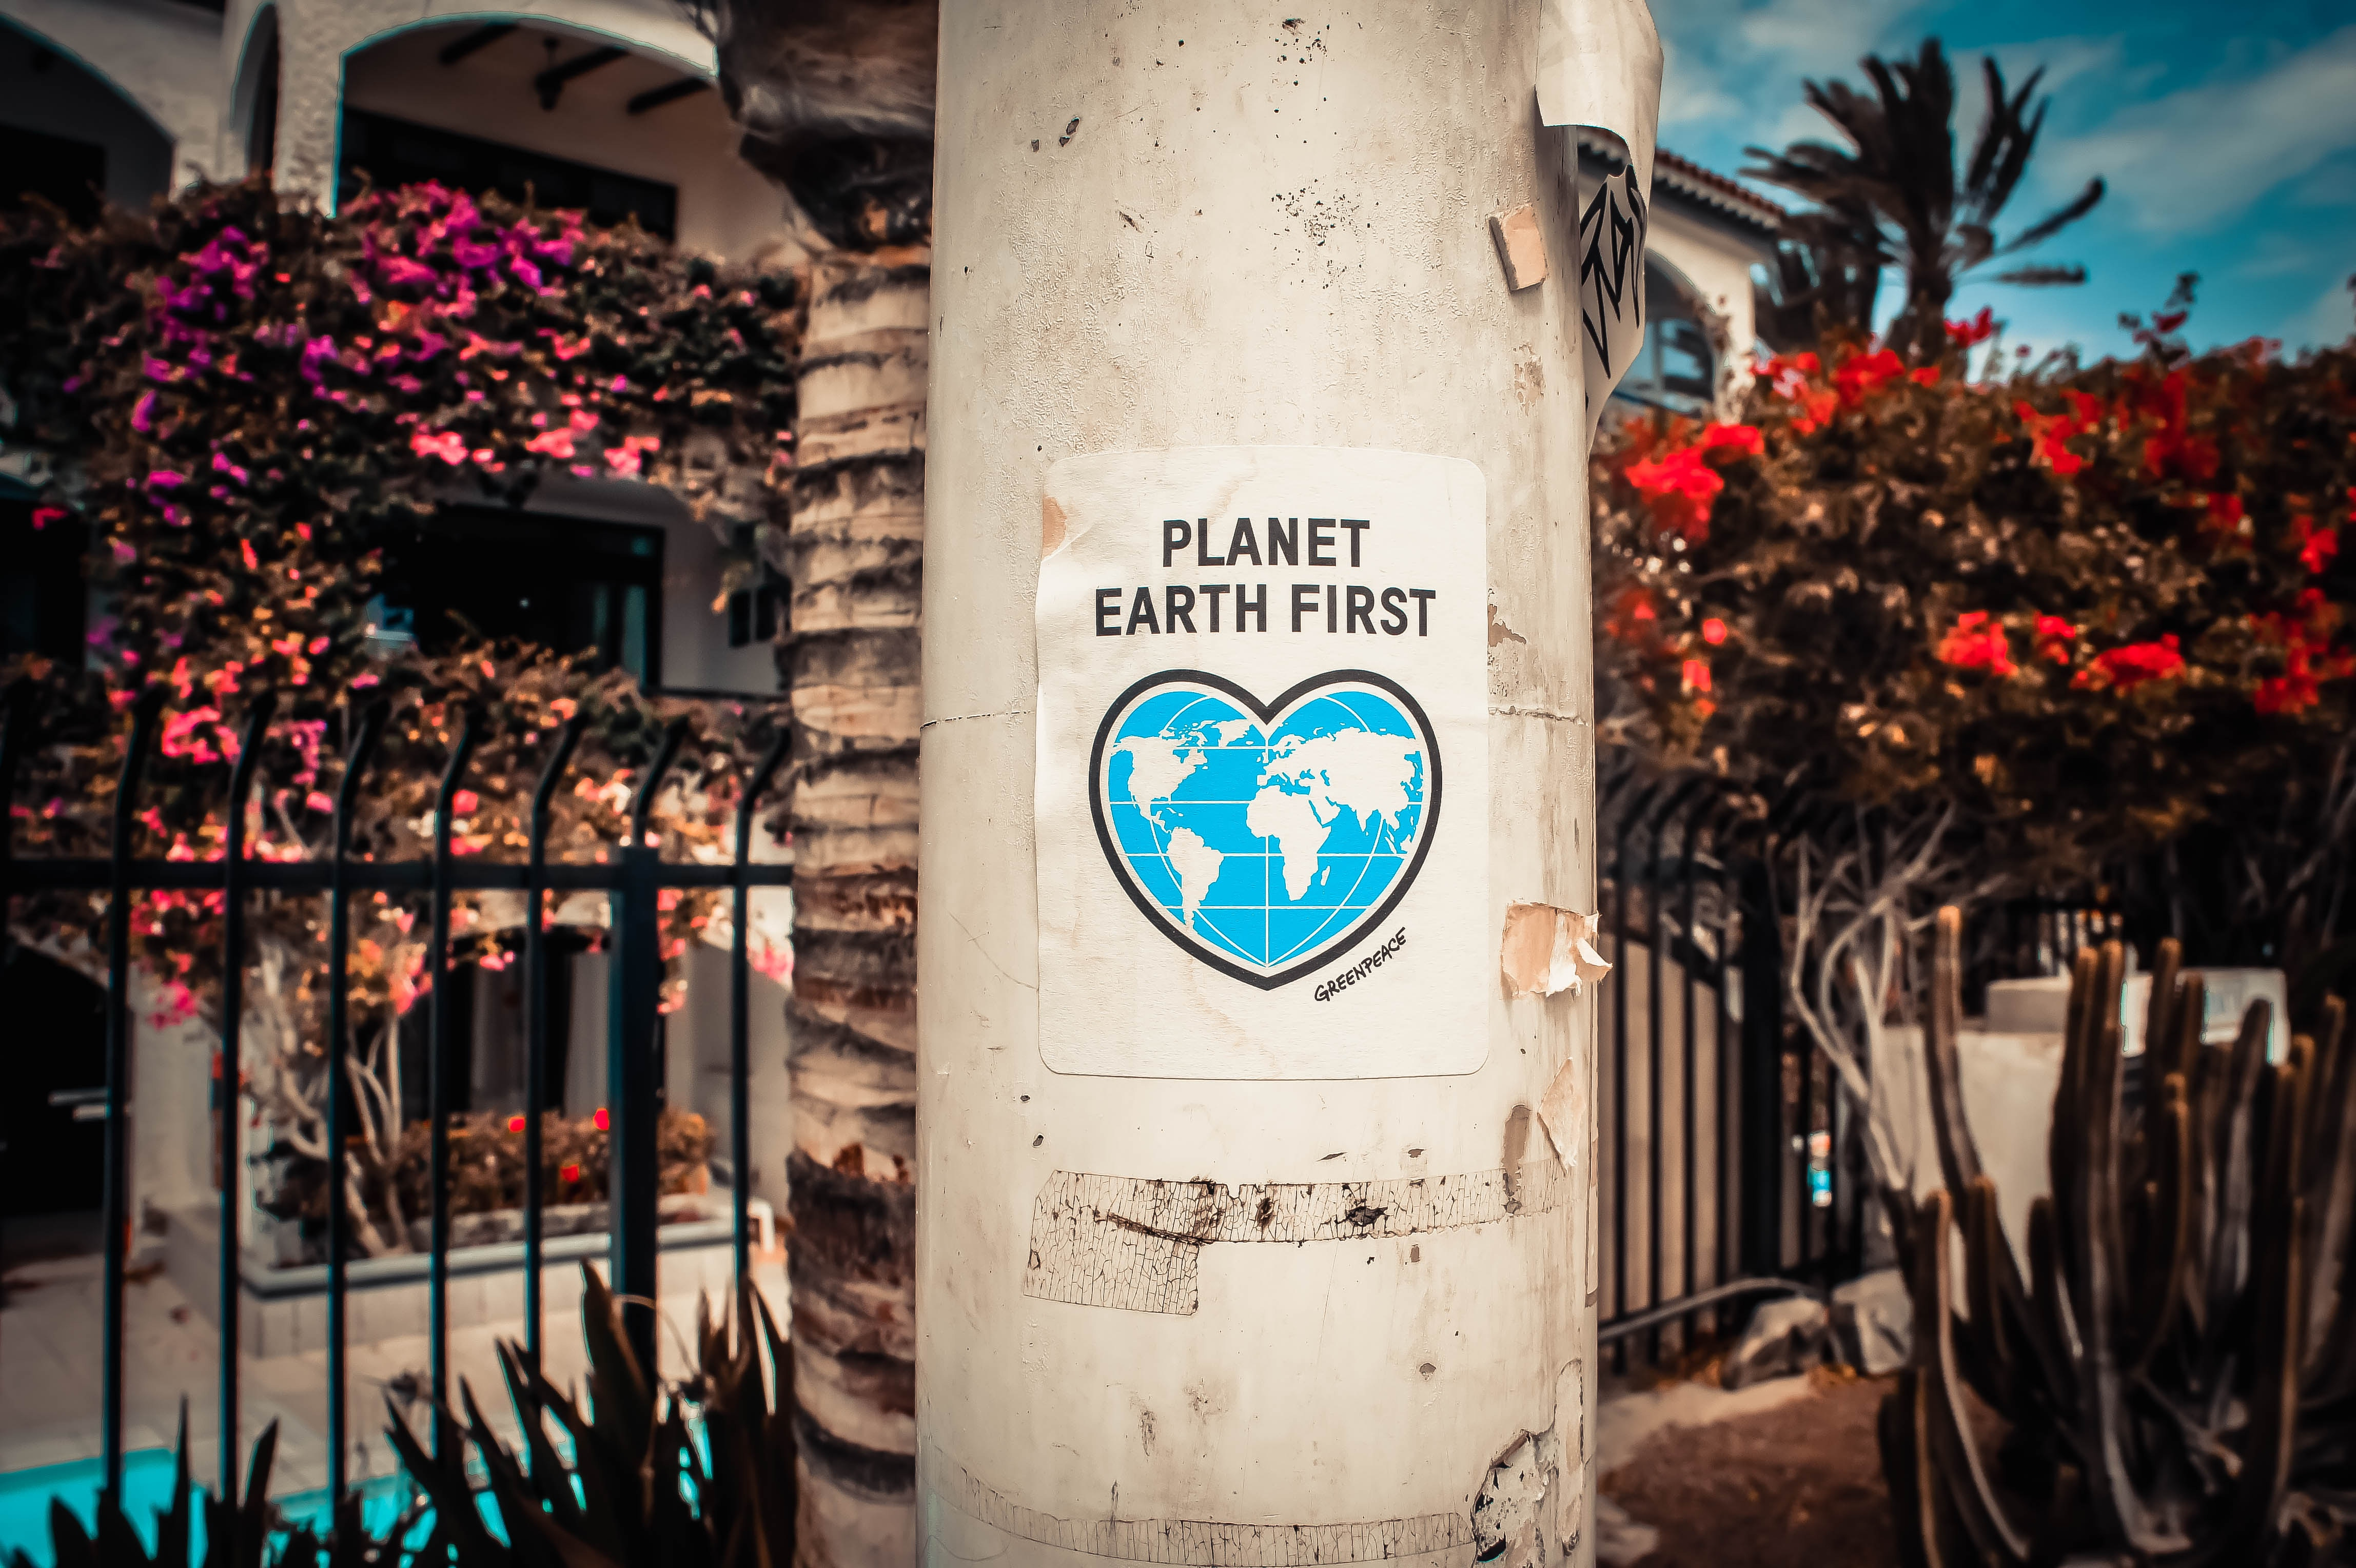 Earth Planet First Resources: We have used a year's worth of Earth's resources in just seven months